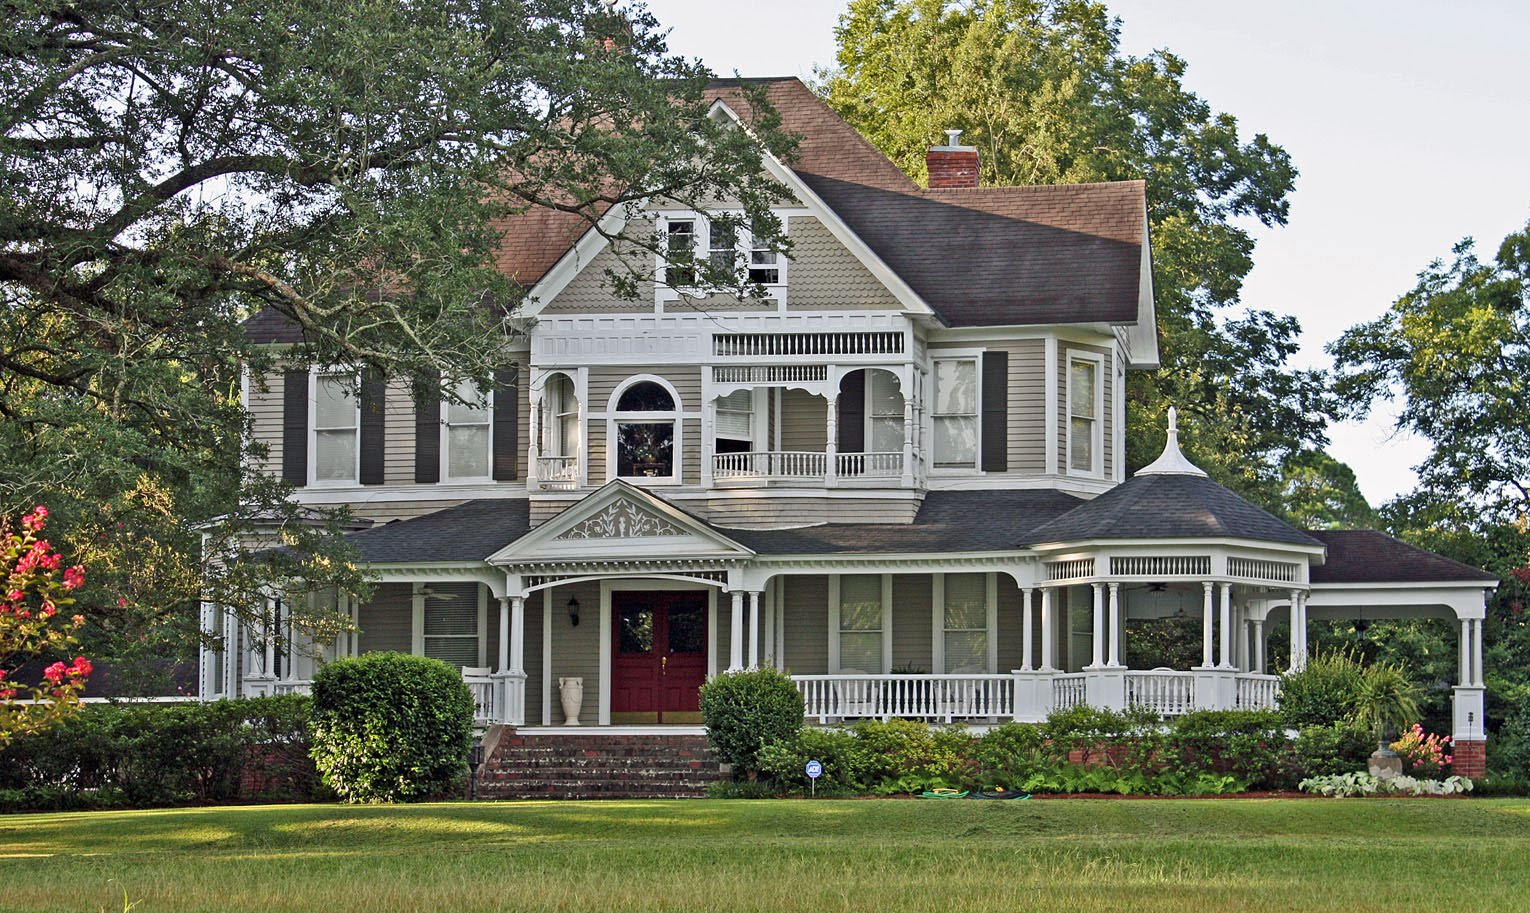 Southern lagniappe the historic houses of canton for Classic houses images